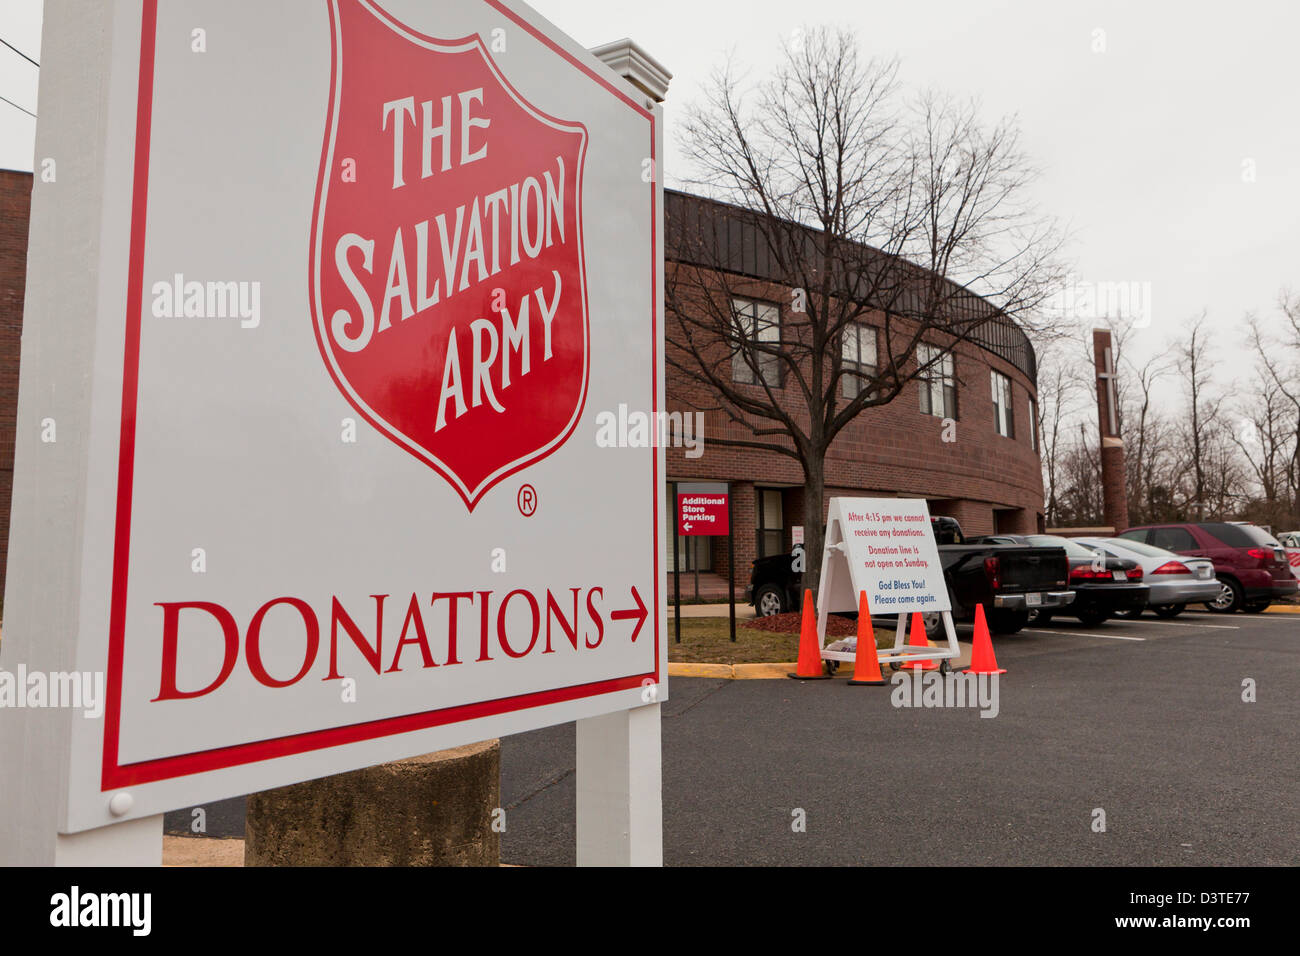 The Salvation Army donation center sign - Virginia USA - Stock Image